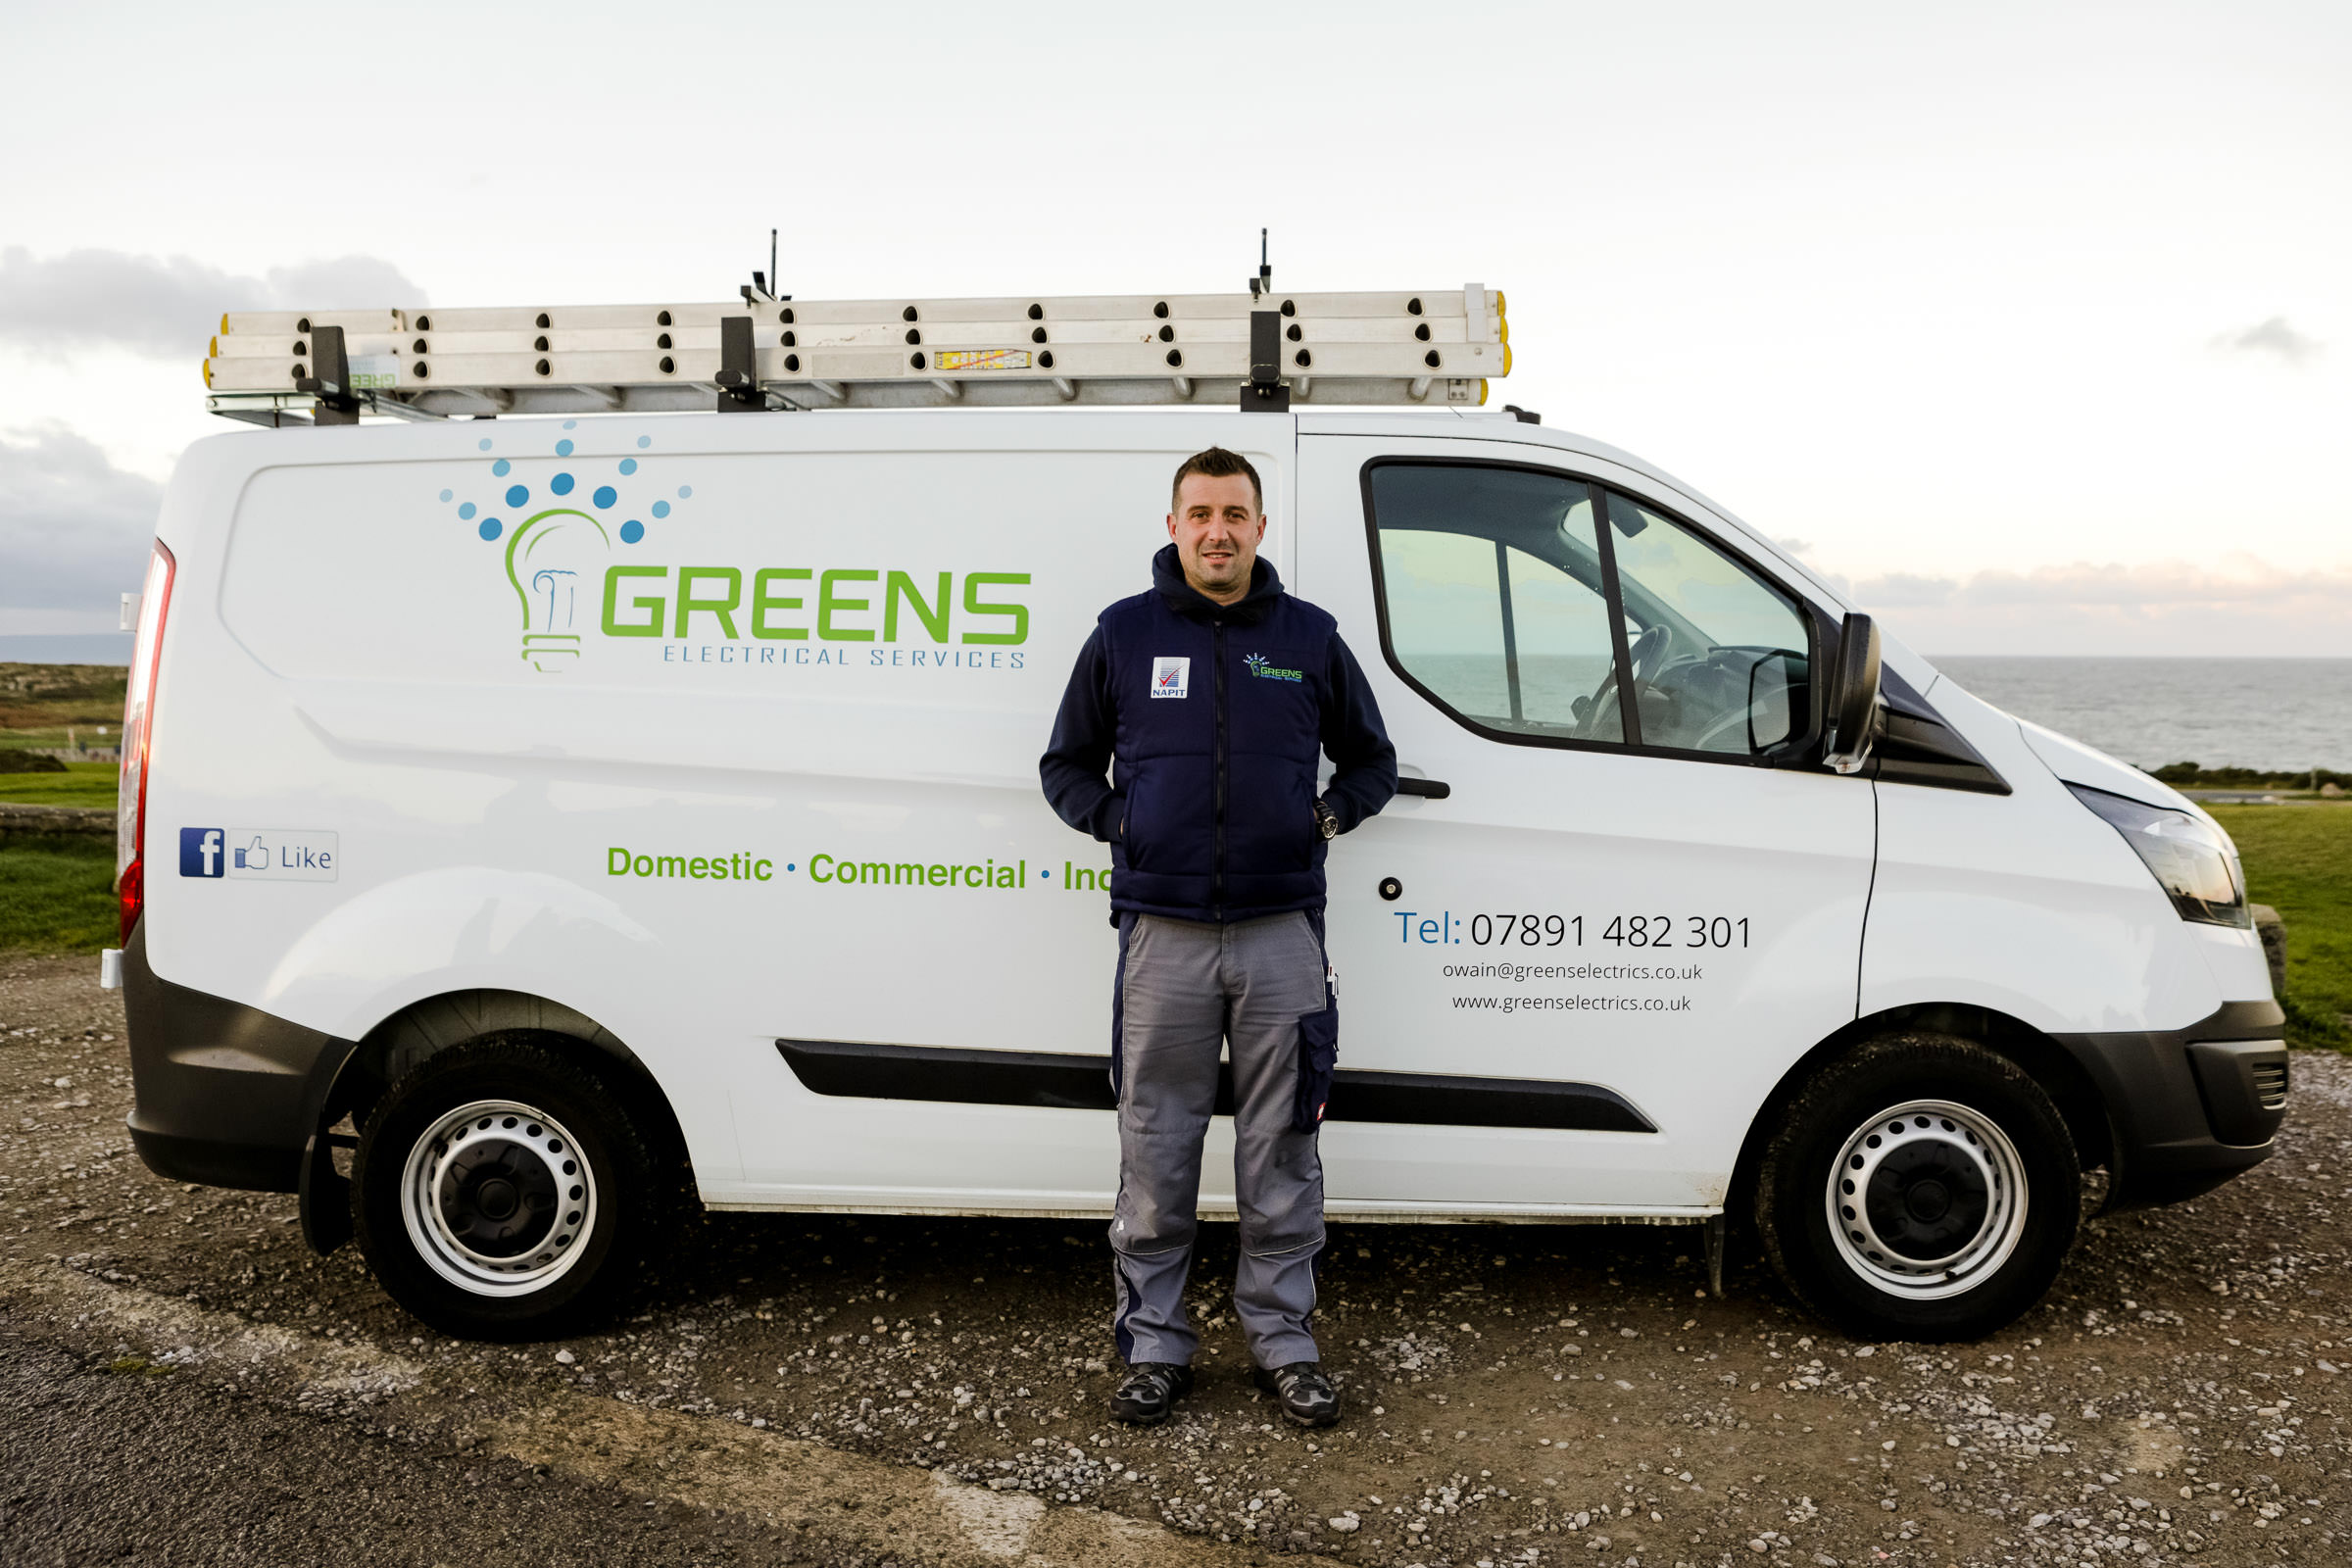 Owain Green - Greens Electrical Services